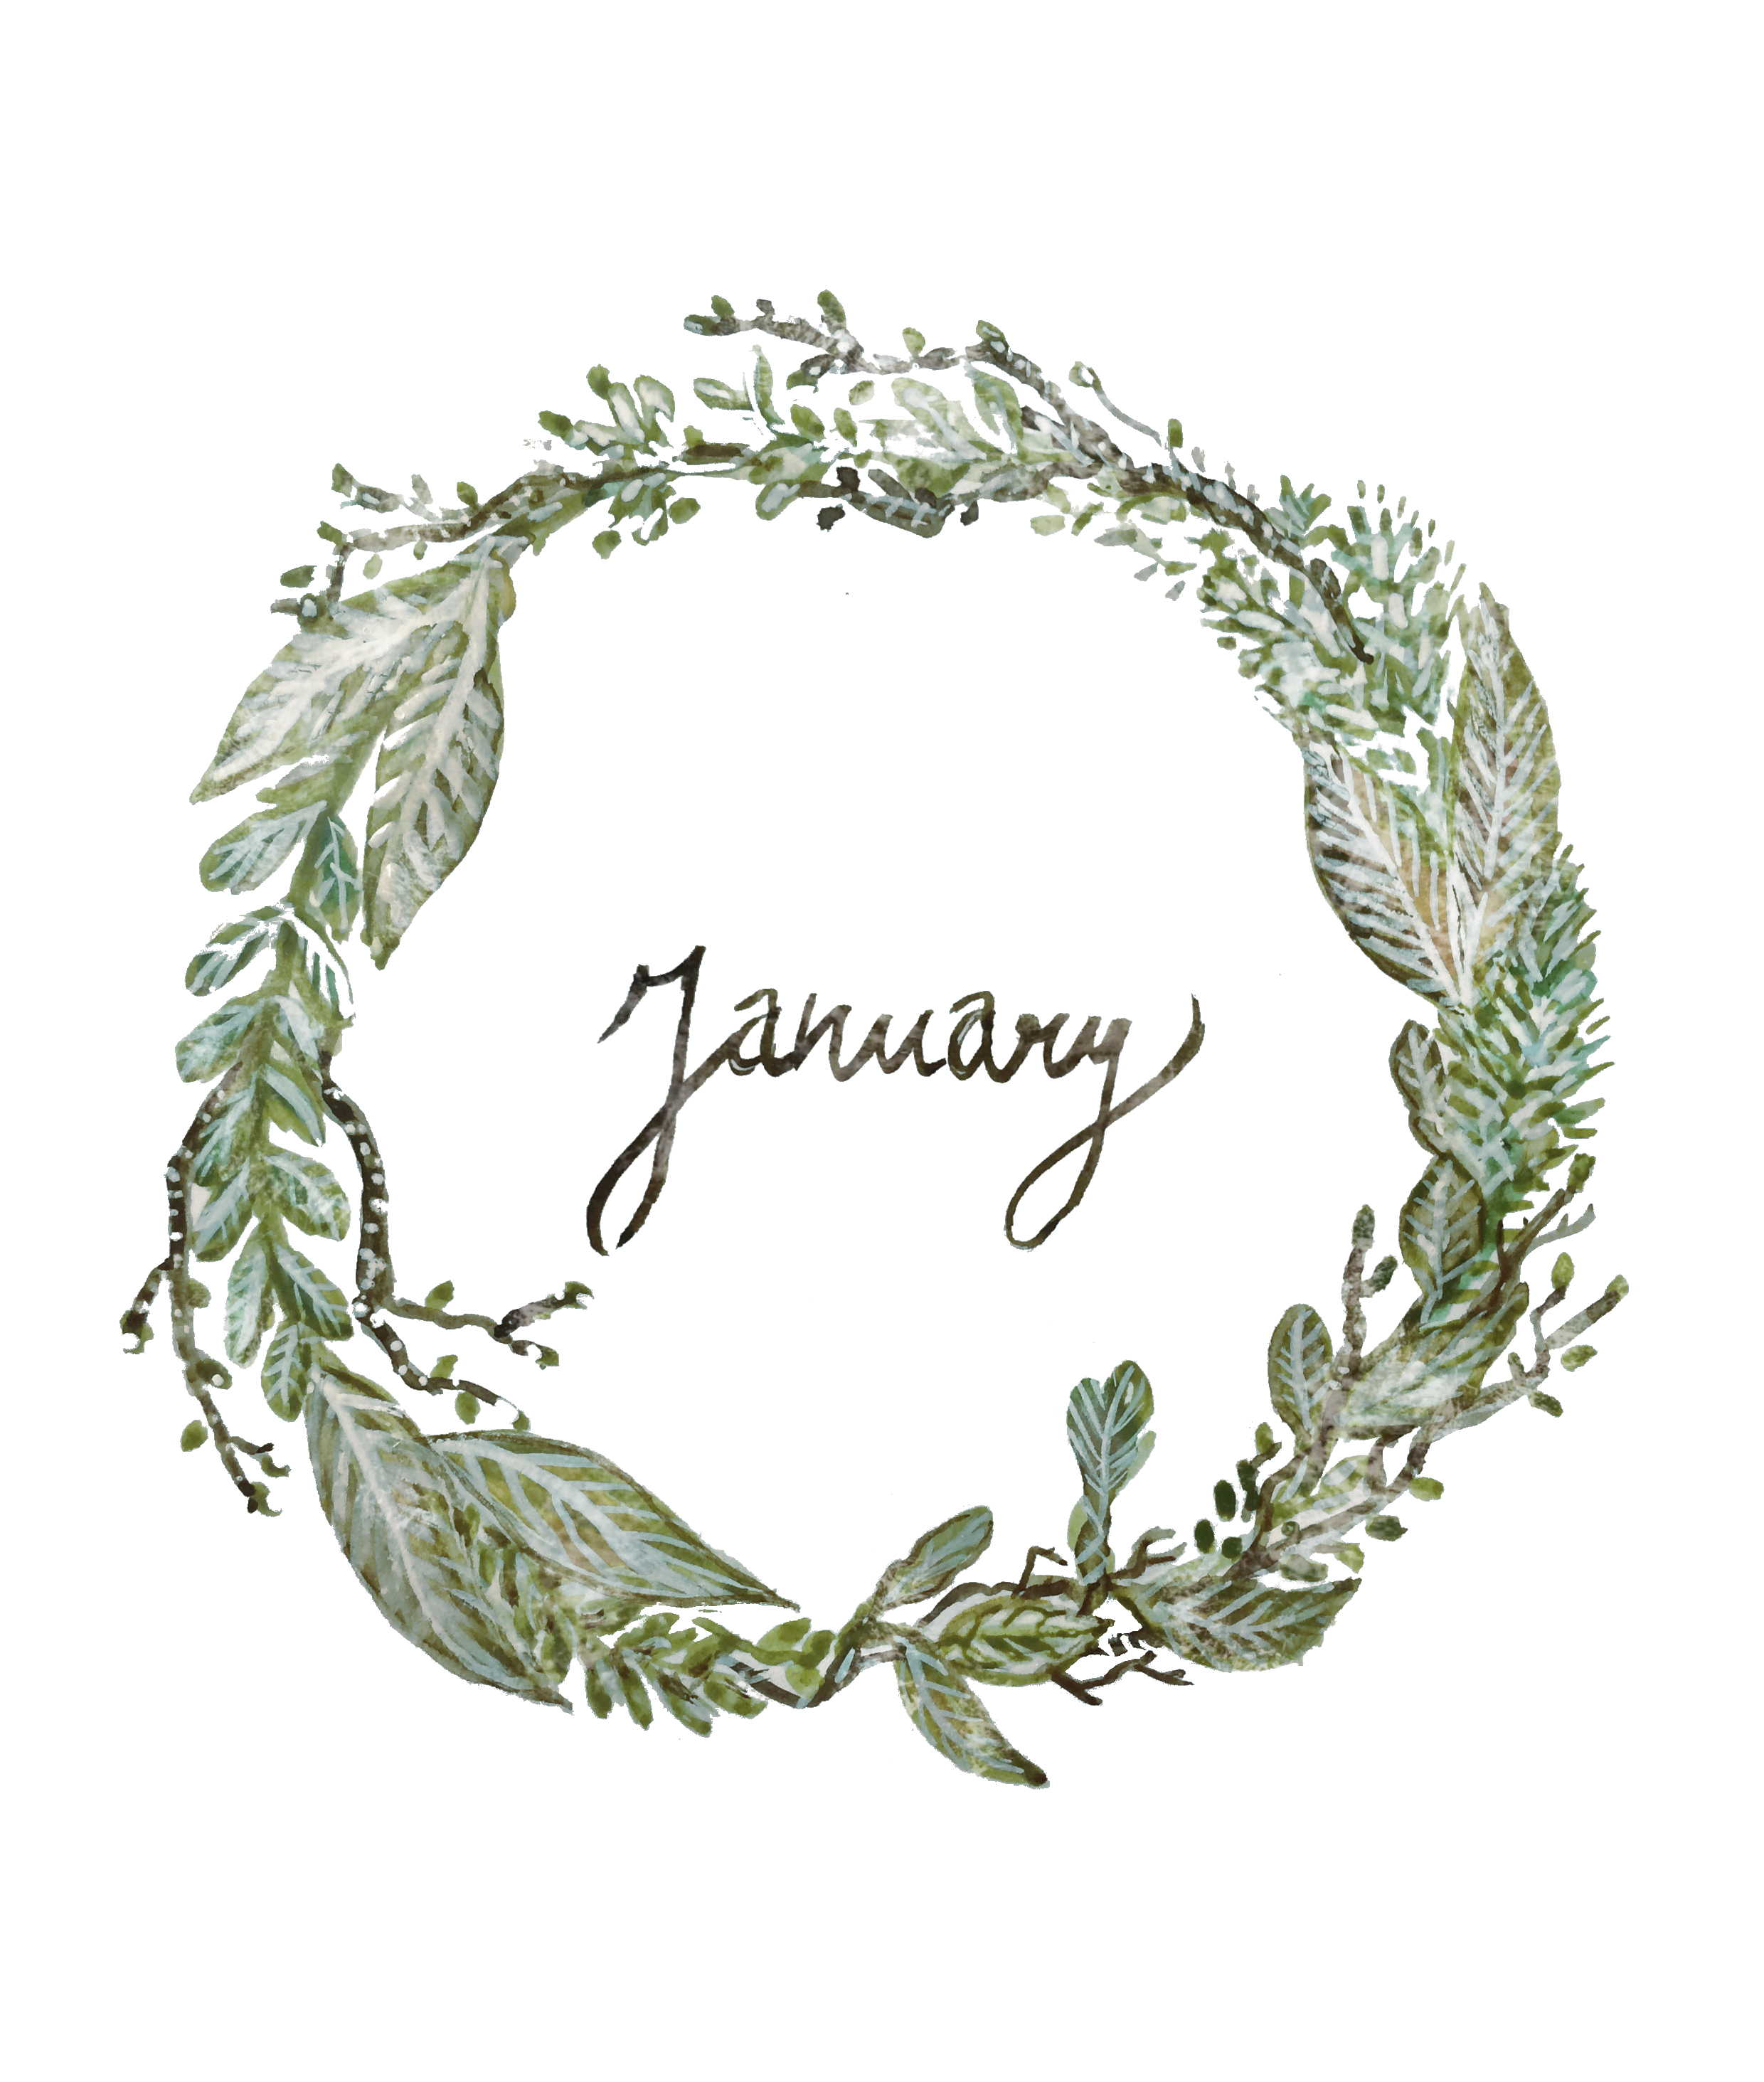 January by Emile Maguin | Hannah Bullivant